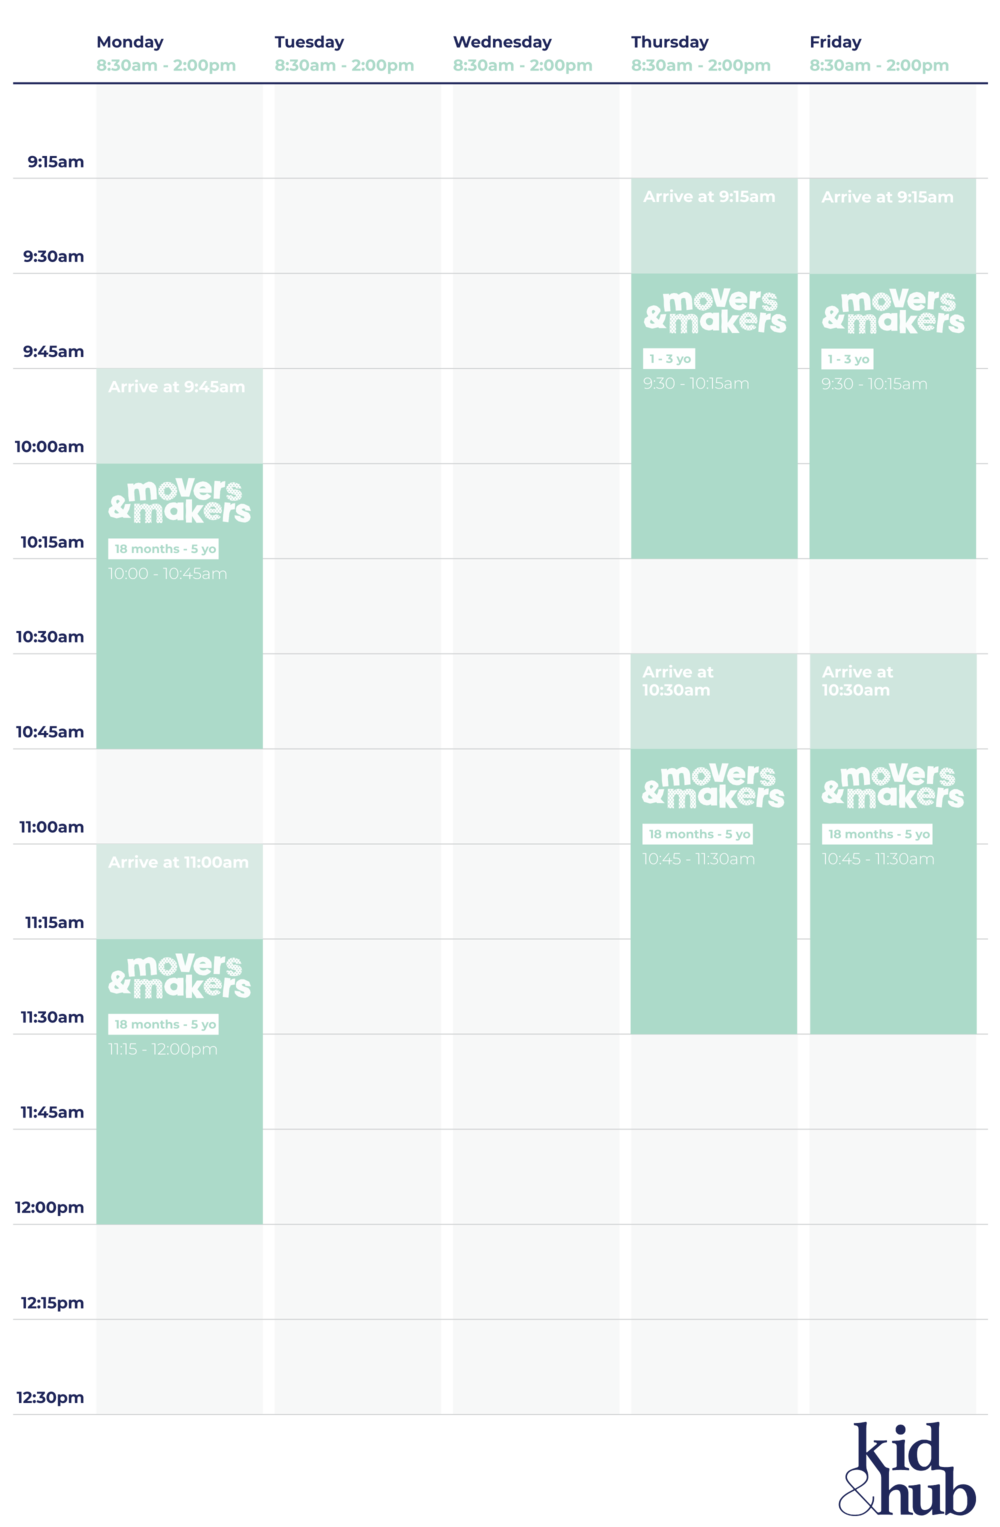 03f-timetable-13dec.png